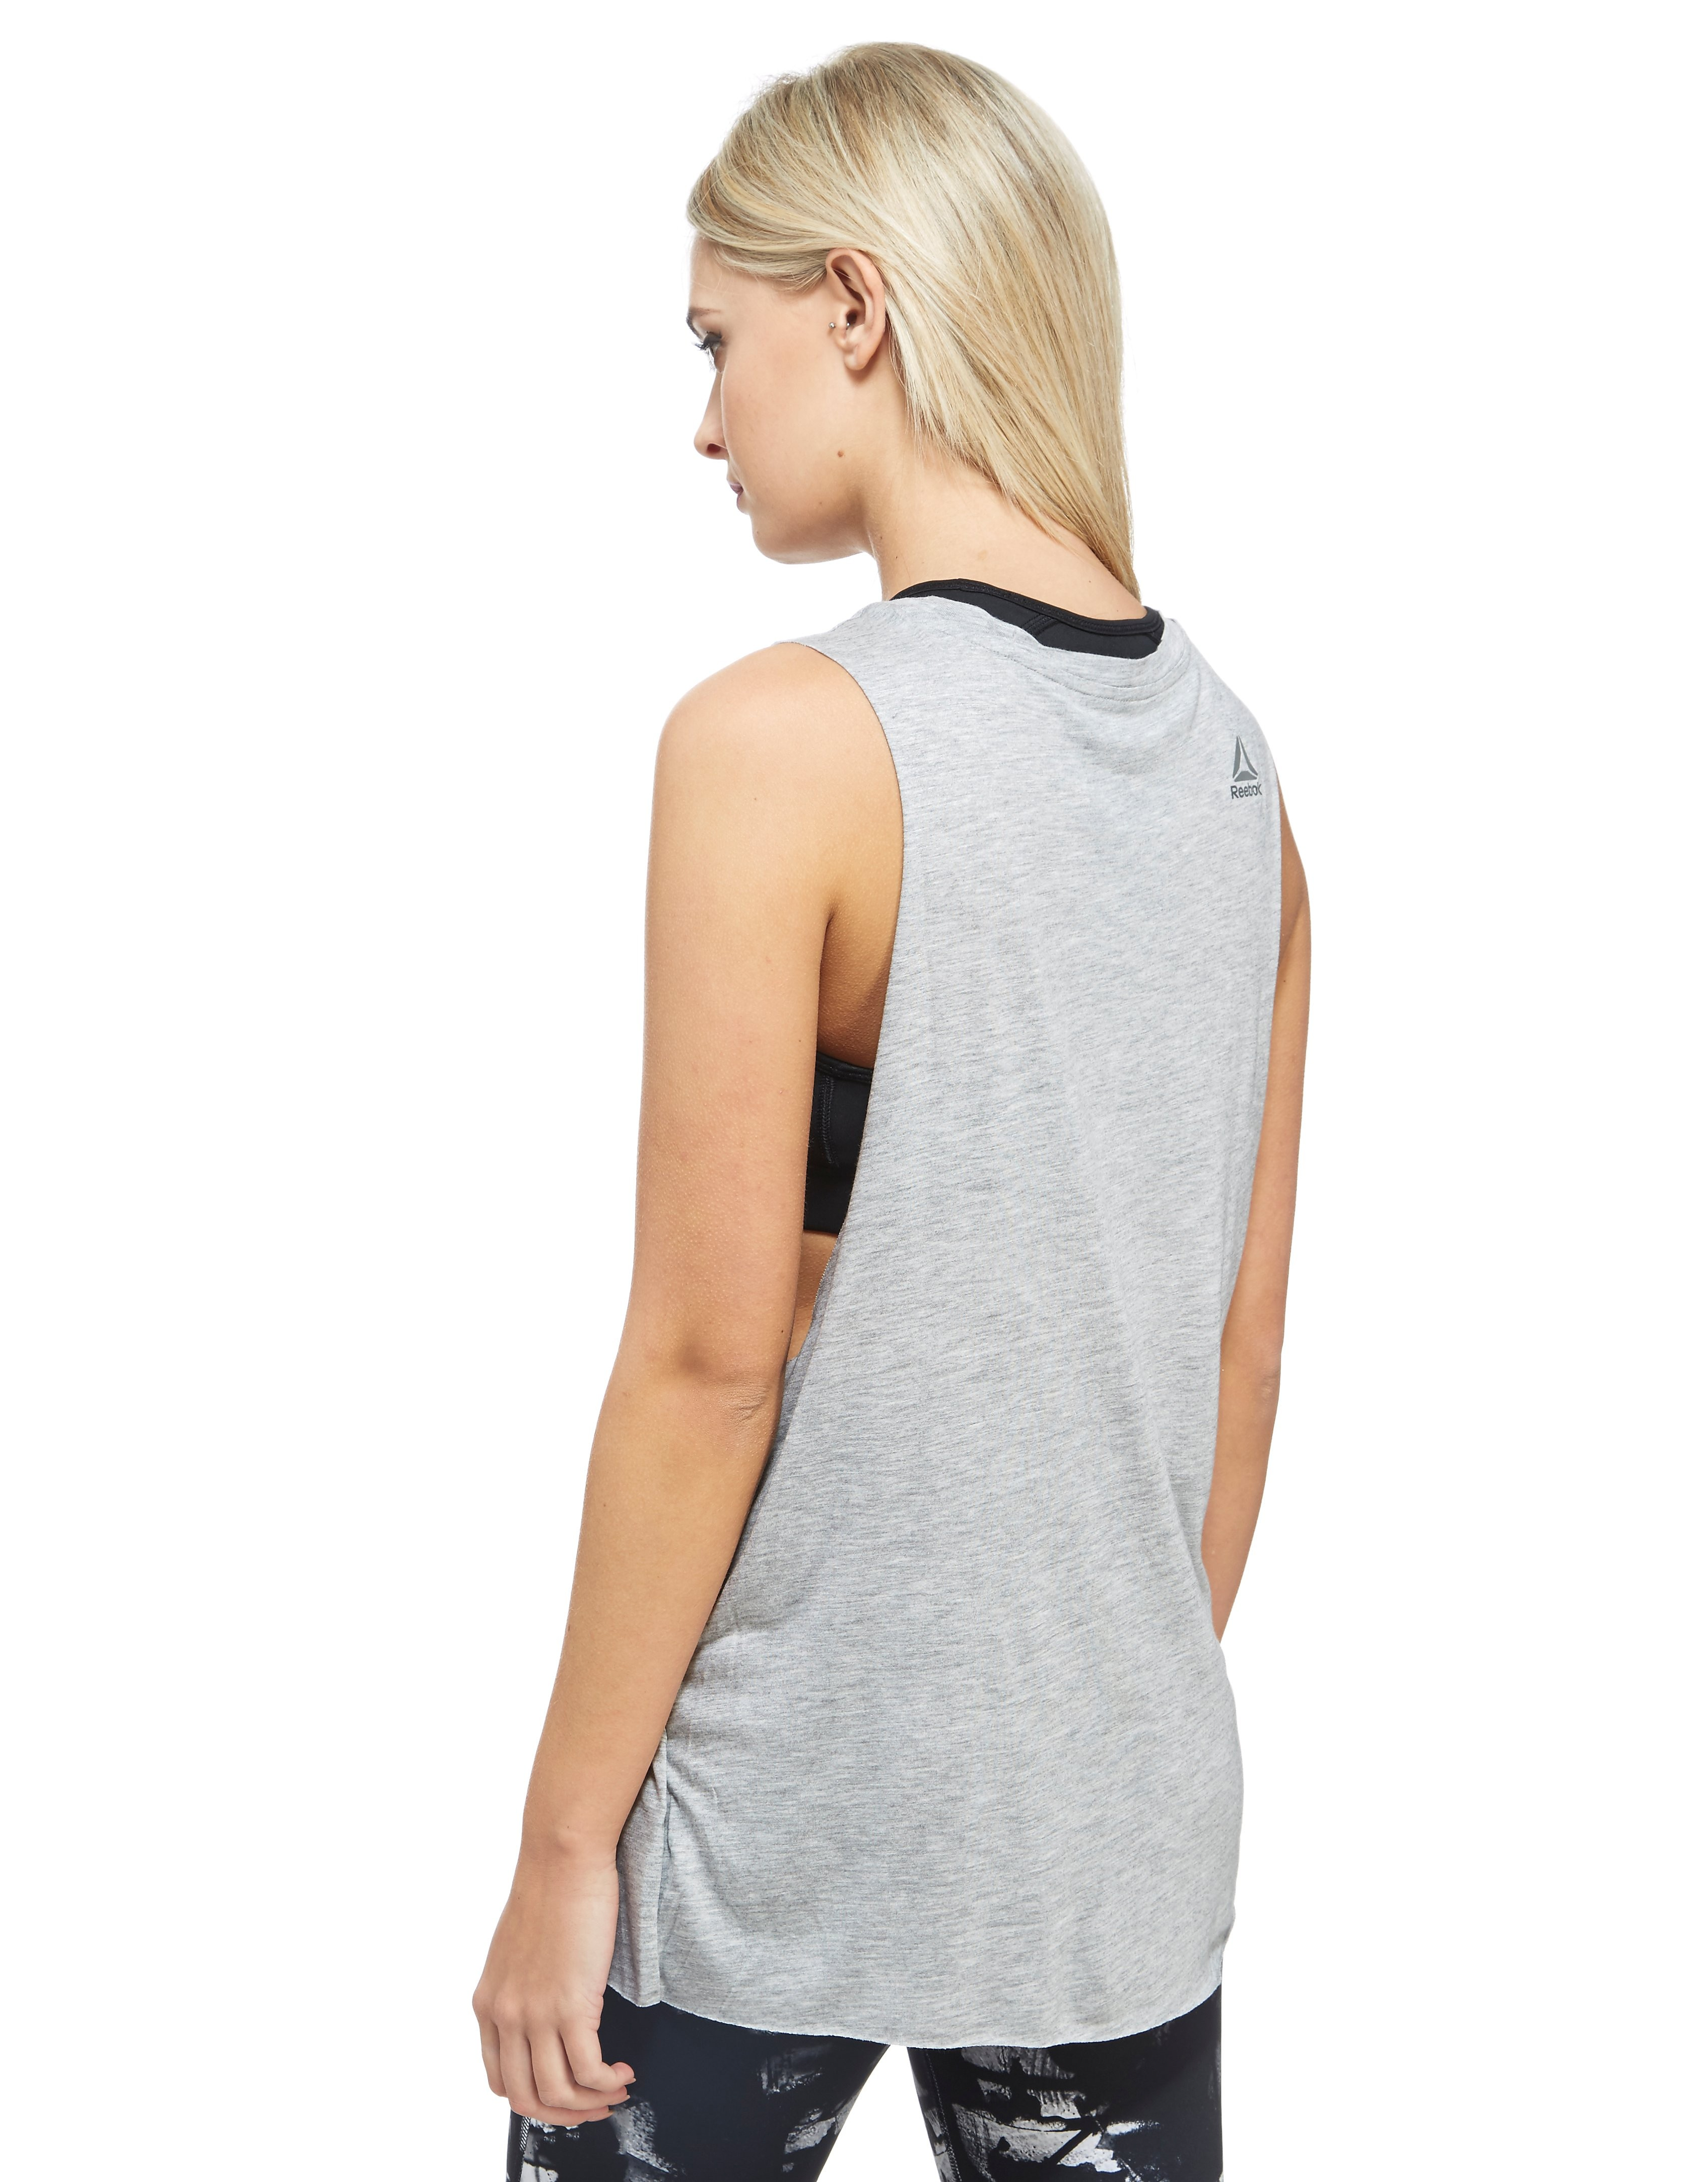 Reebok Muscle Tank Top